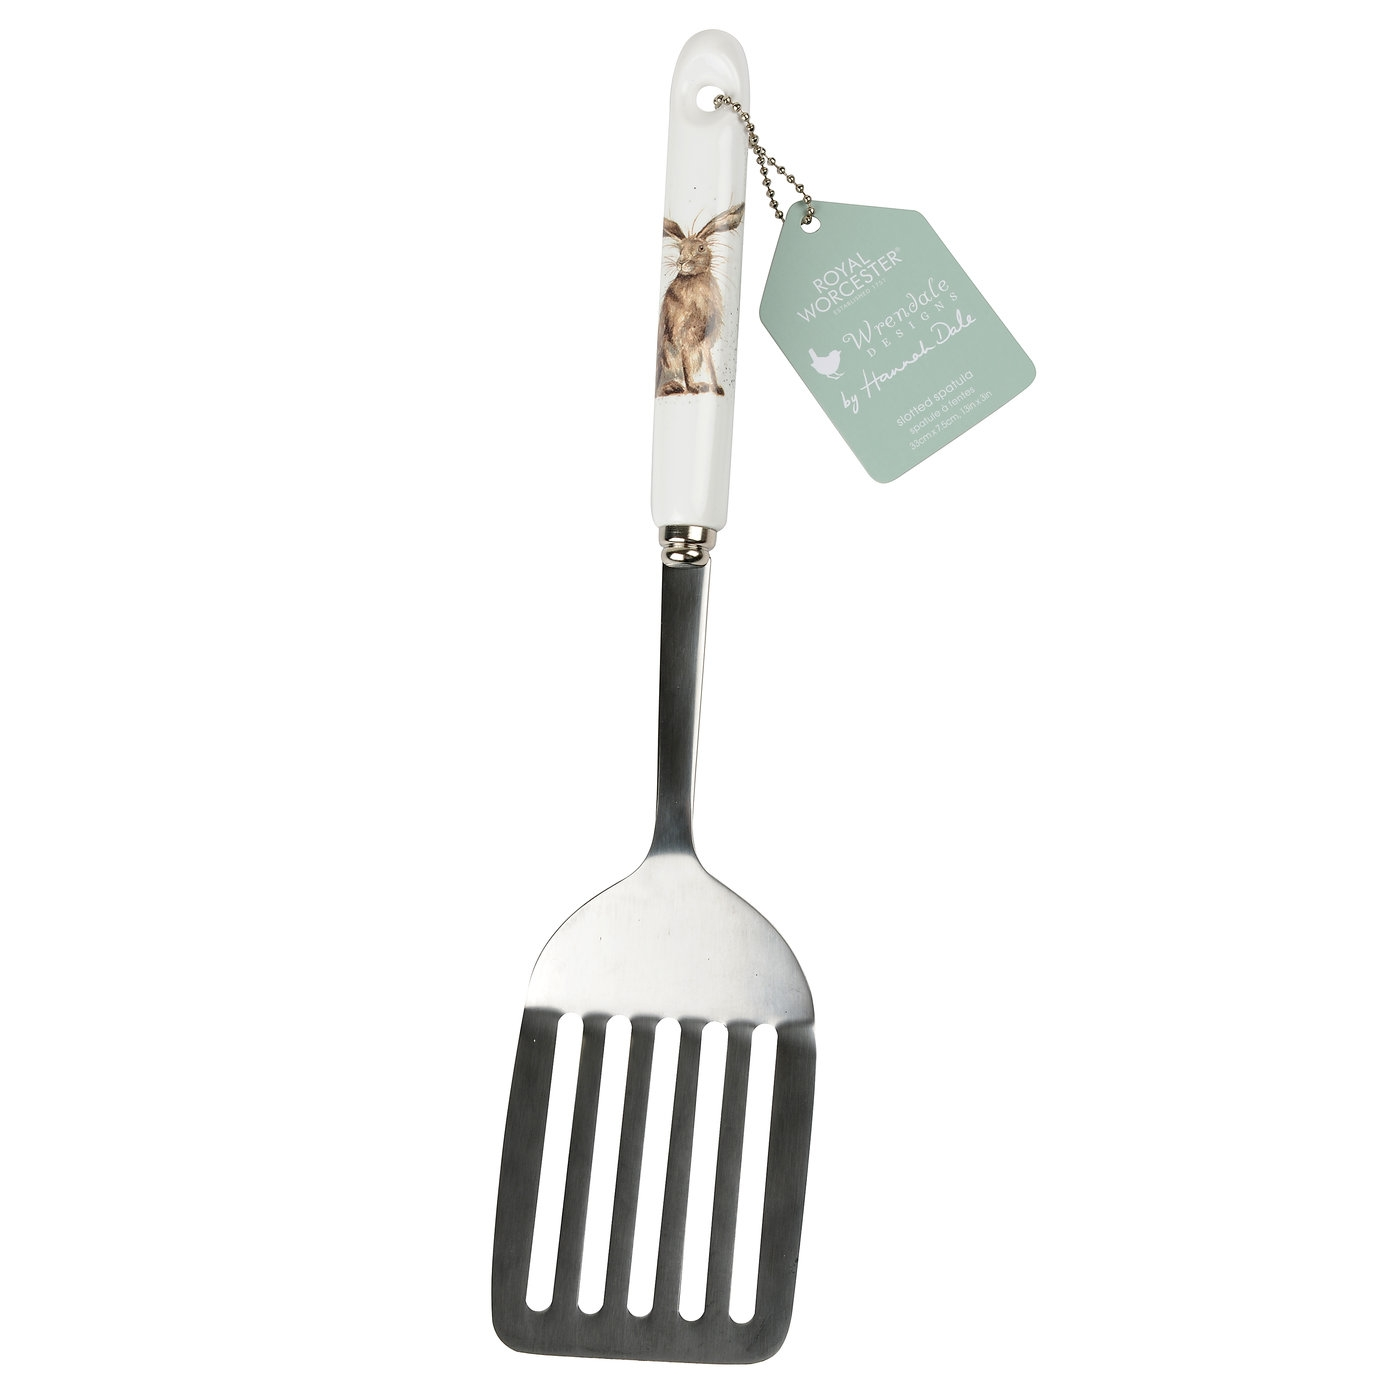 Royal Worcester Wrendale Designs Slotted Spatula Hare Design image number 0